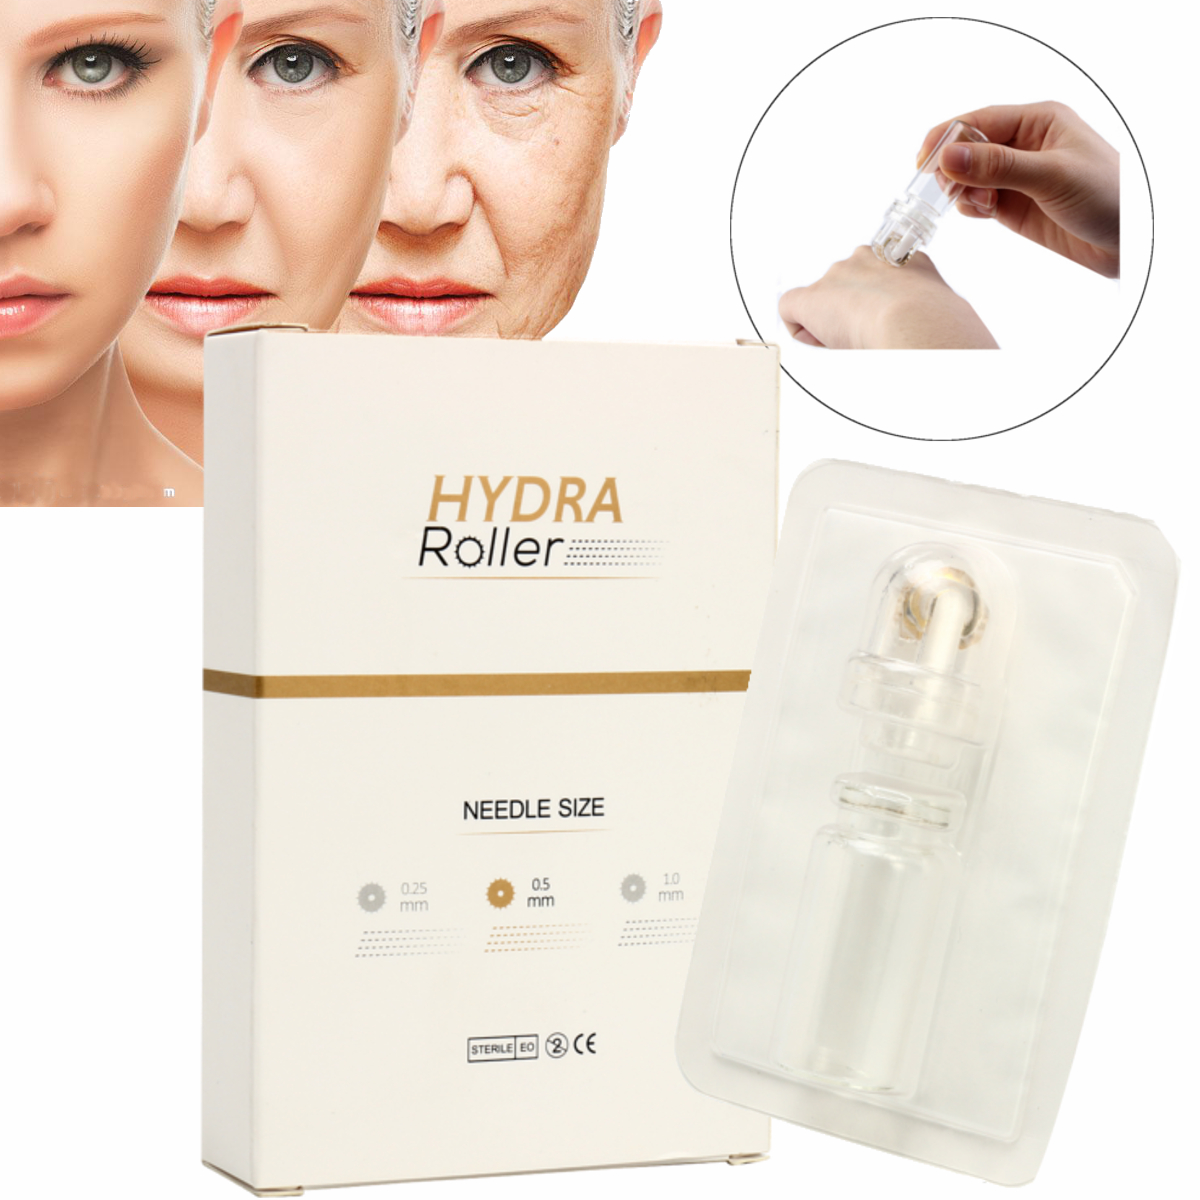 0.25-1.0mm 64 Micro Needle Therapy Facial Derma Roller